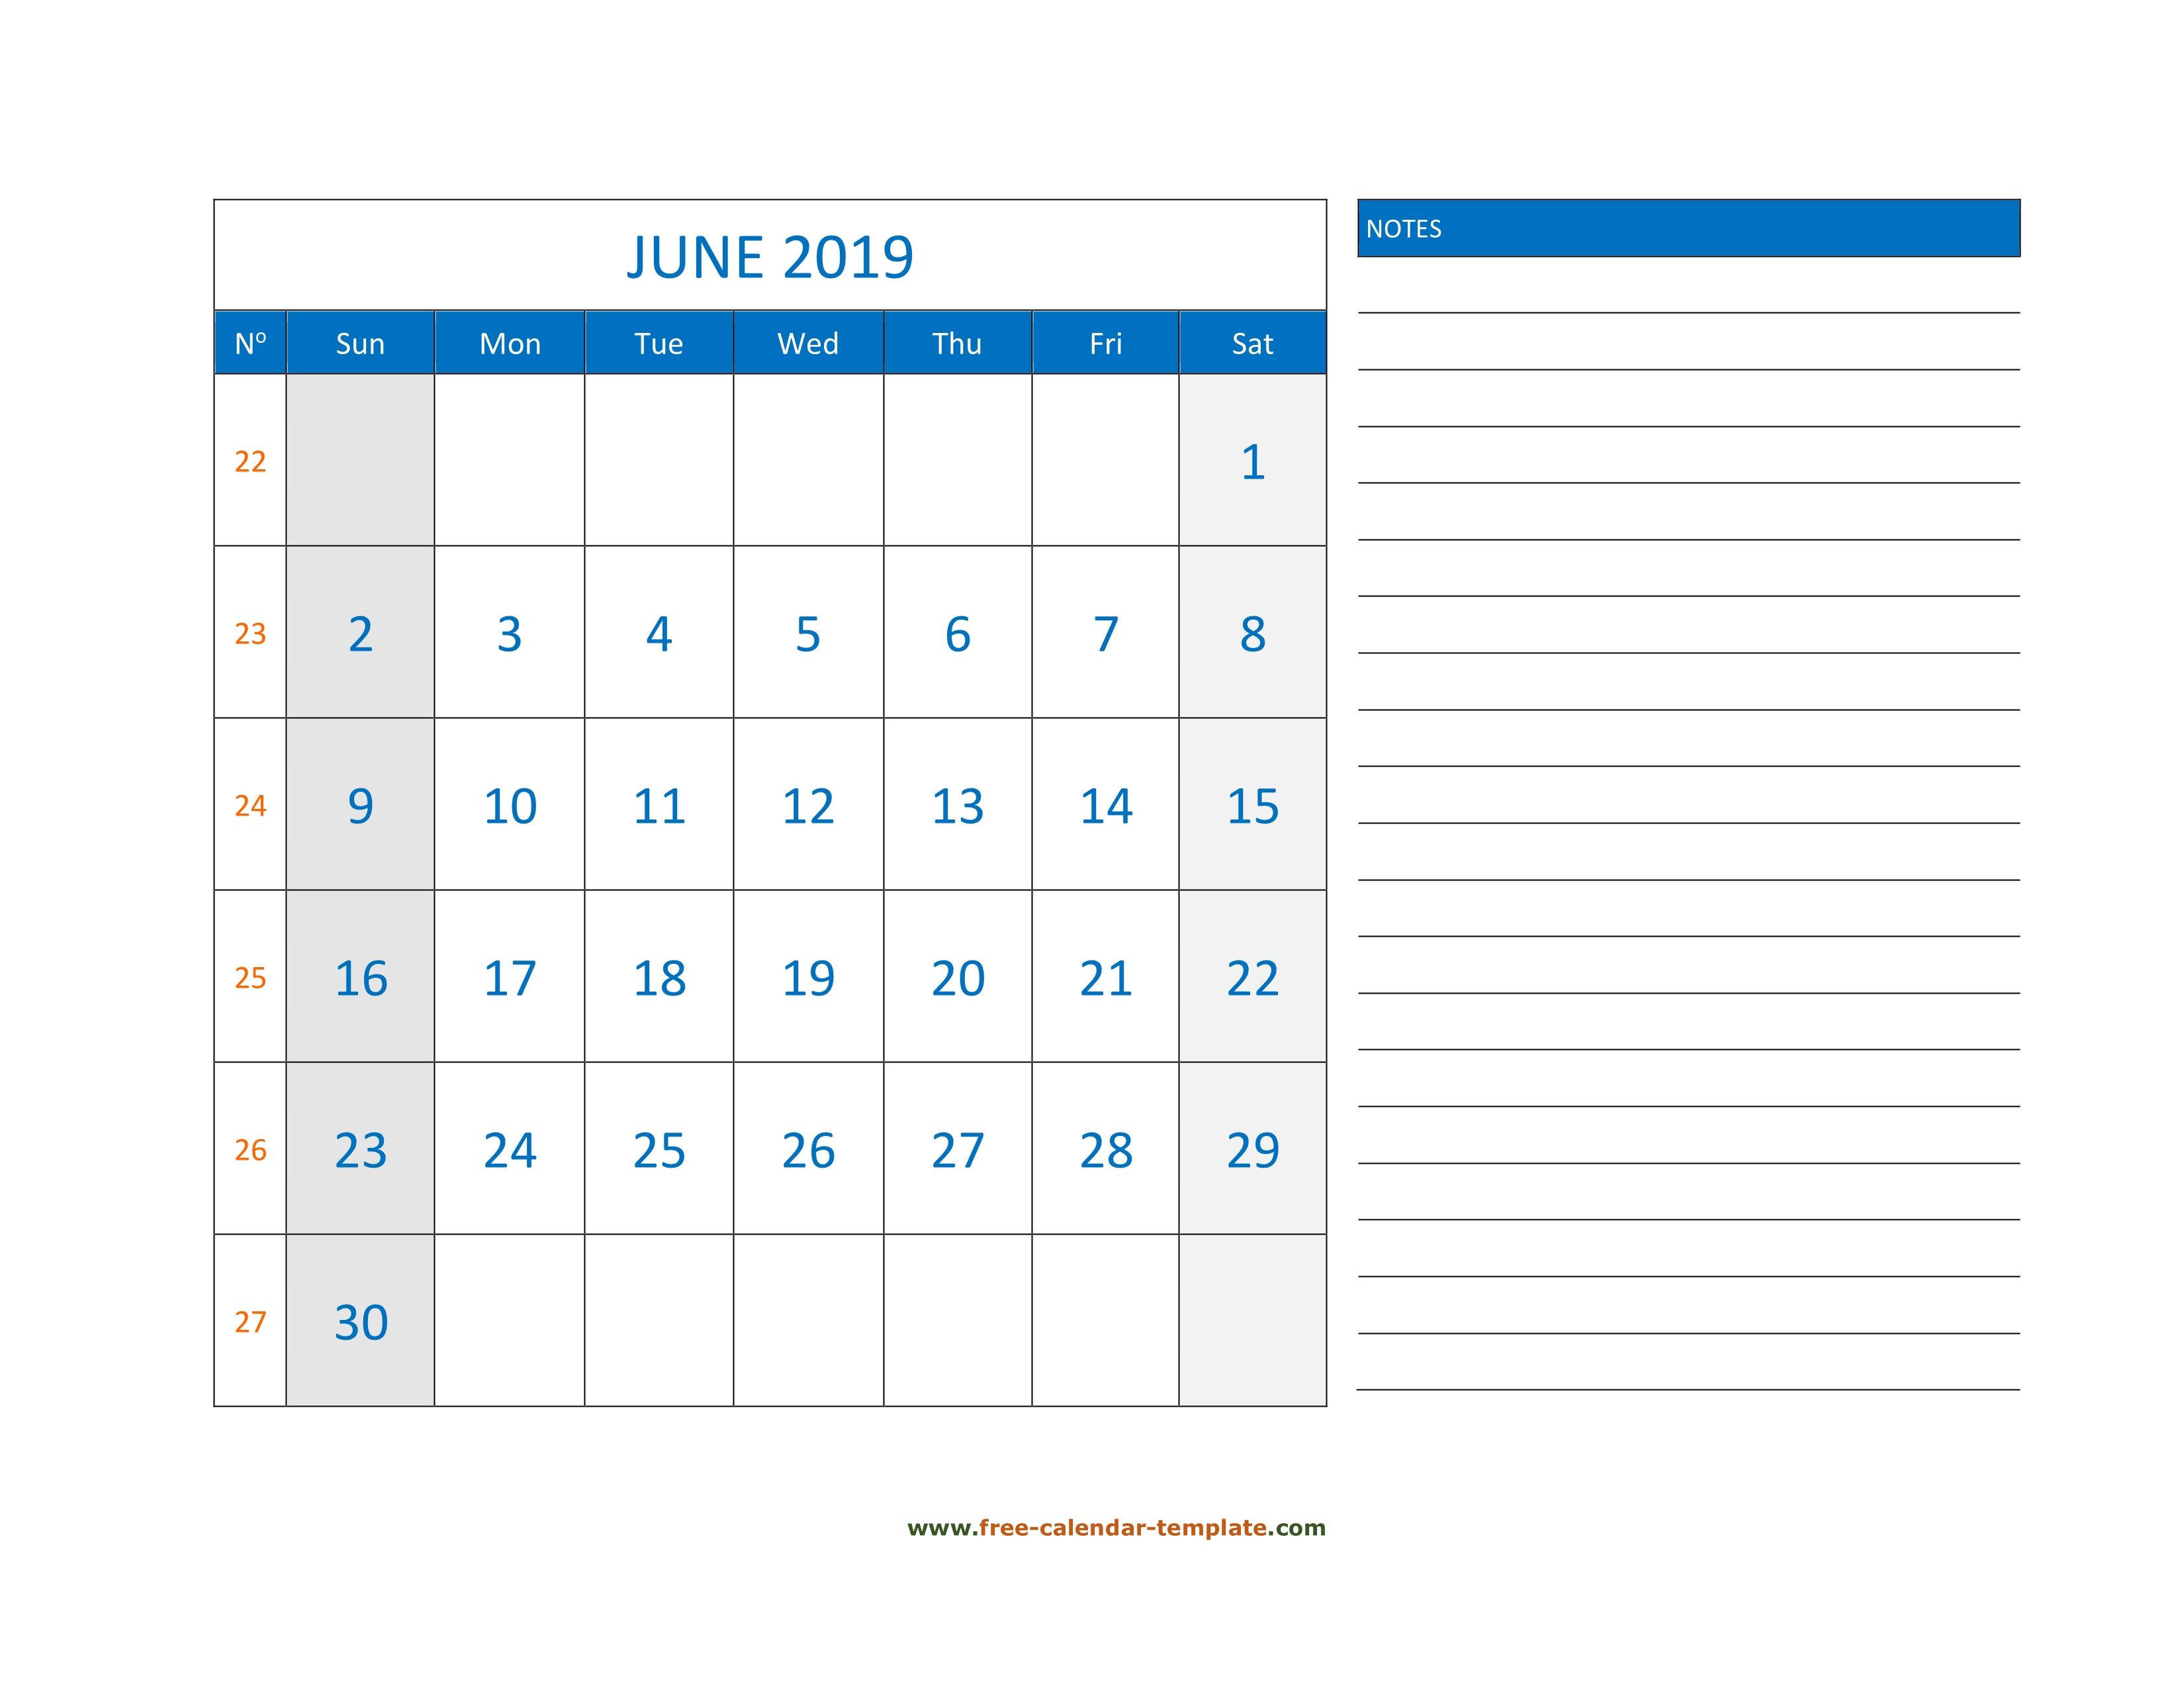 June Calendar 2019 Grid Lines For Holidays And Notes